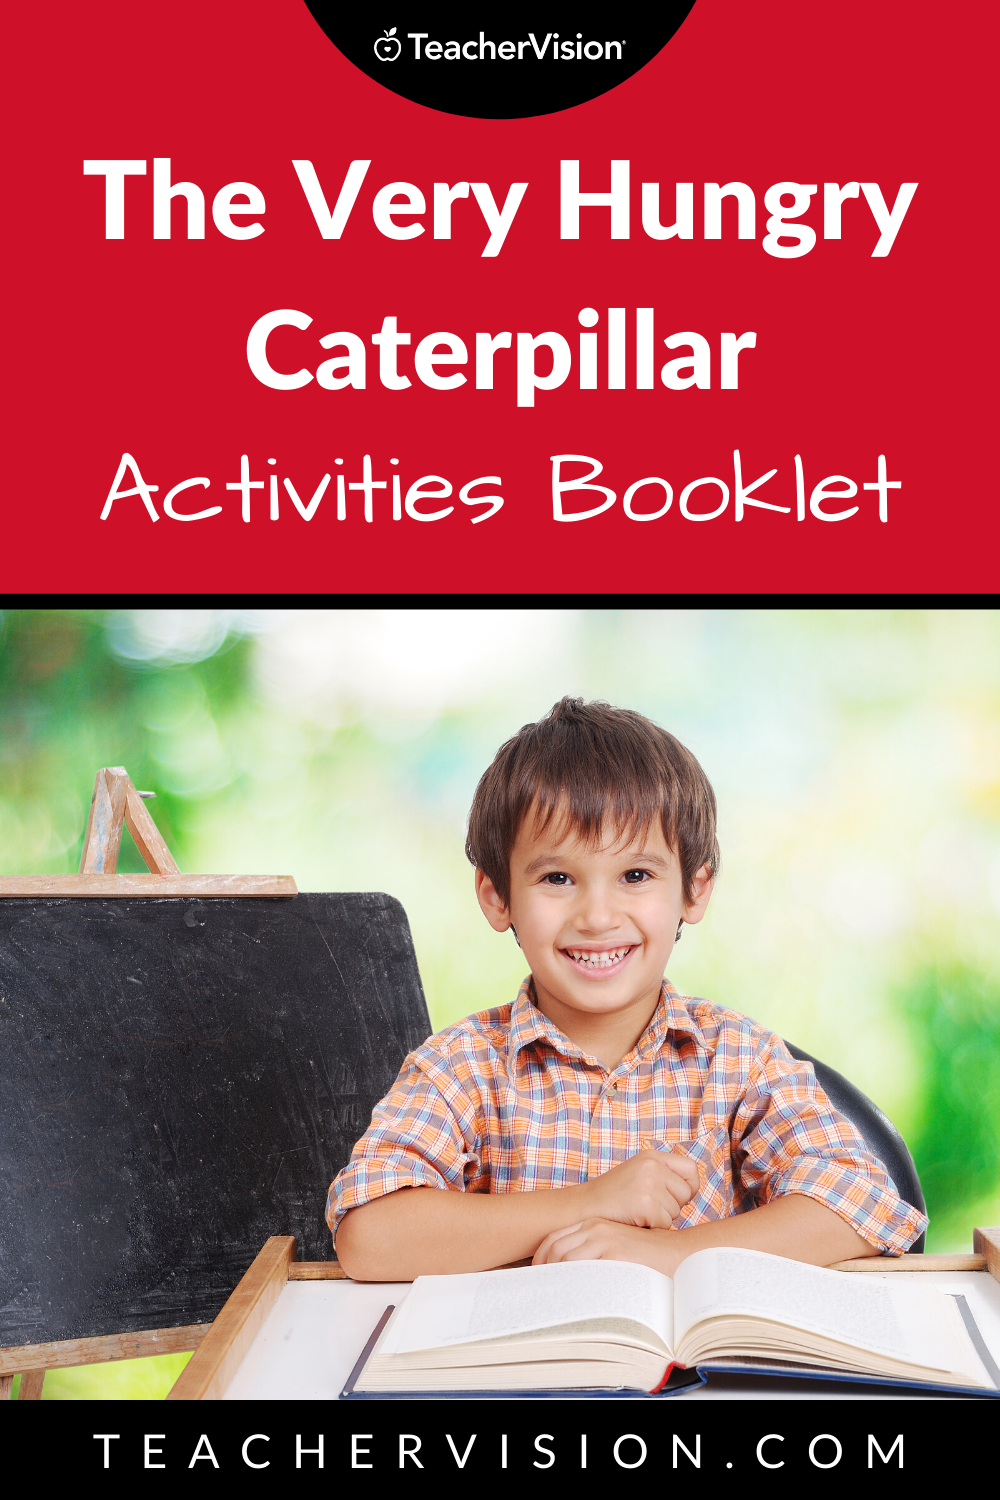 The Very Hungry Caterpillar Activities Booklet Printable Pre K 2nd Grade The Very Hungry Caterpillar Activities Early Learning Education Lesson Plans [ 1500 x 1000 Pixel ]